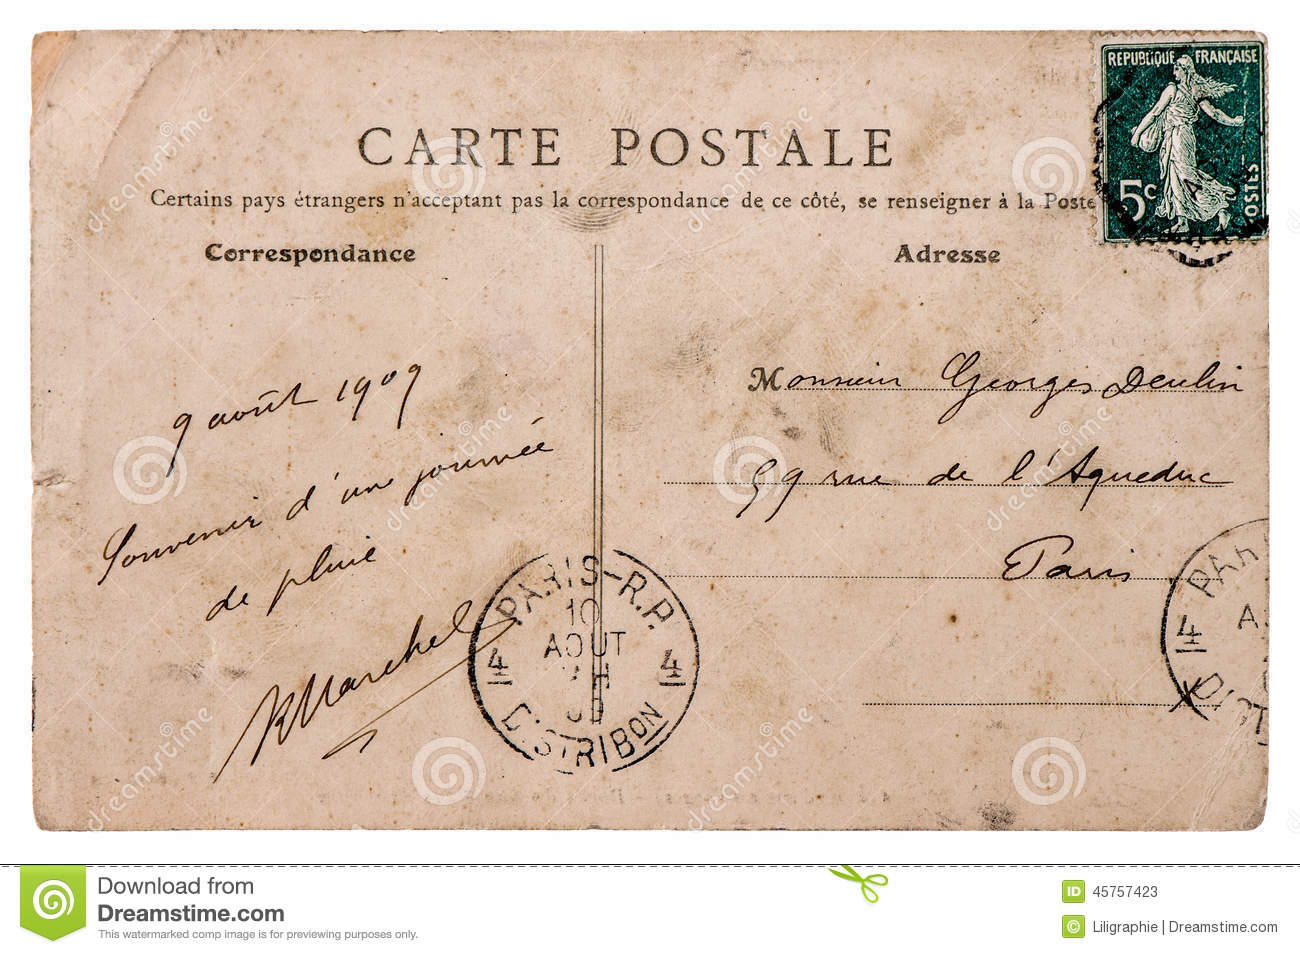 How Much Postage Do I Need To Put On A Regular Letter Sent Antique French Postcard With Stamp From Paris Stock Photo